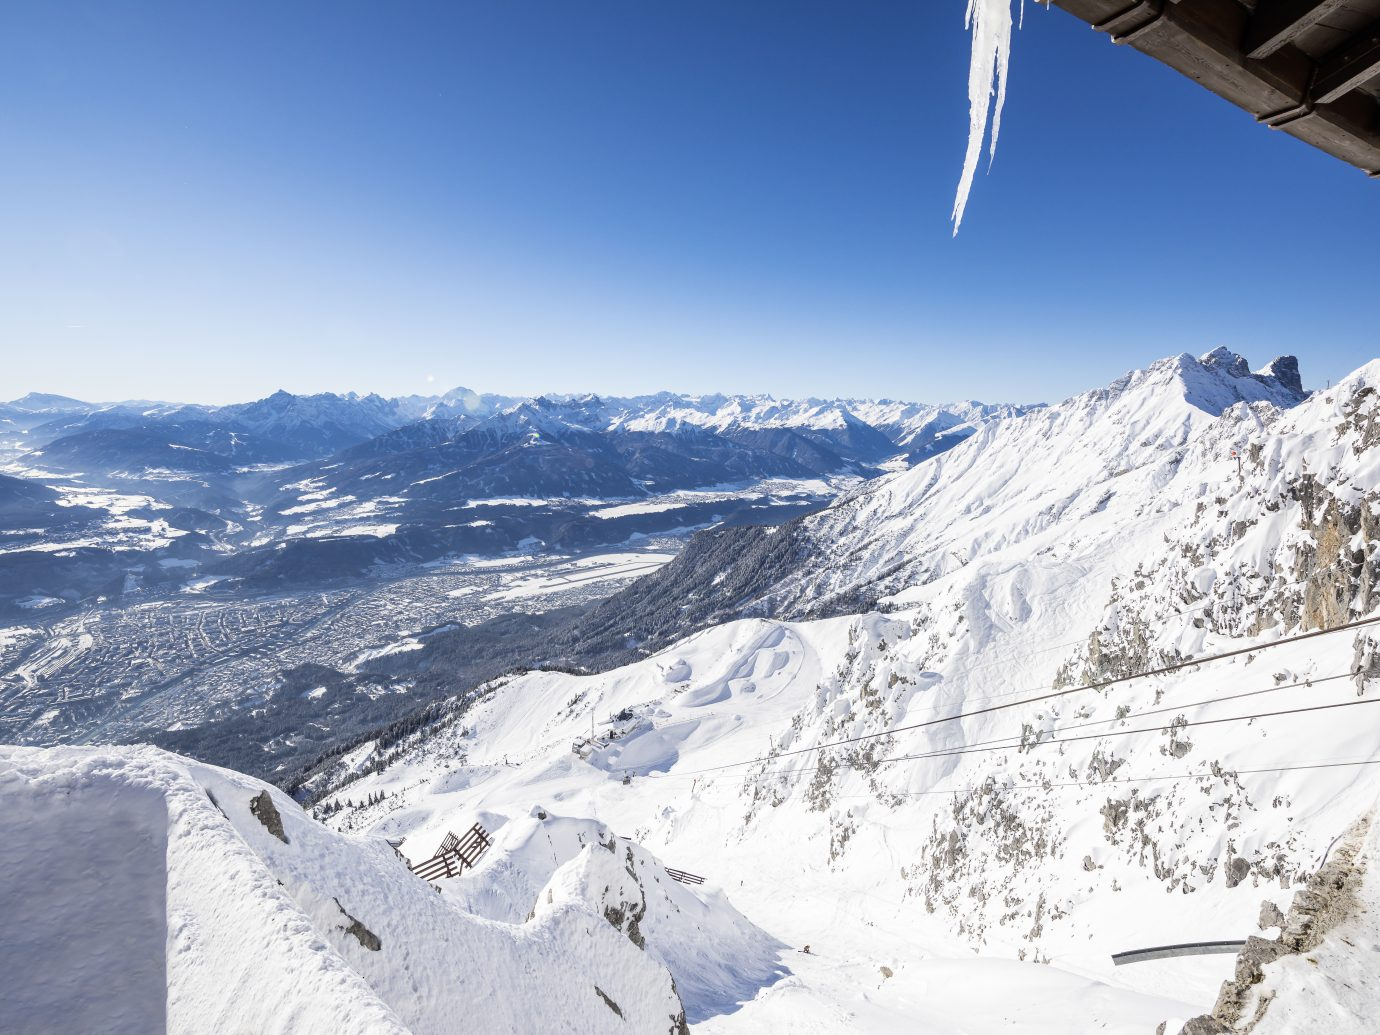 Skiers on a mountain in Innsbruck, Austria